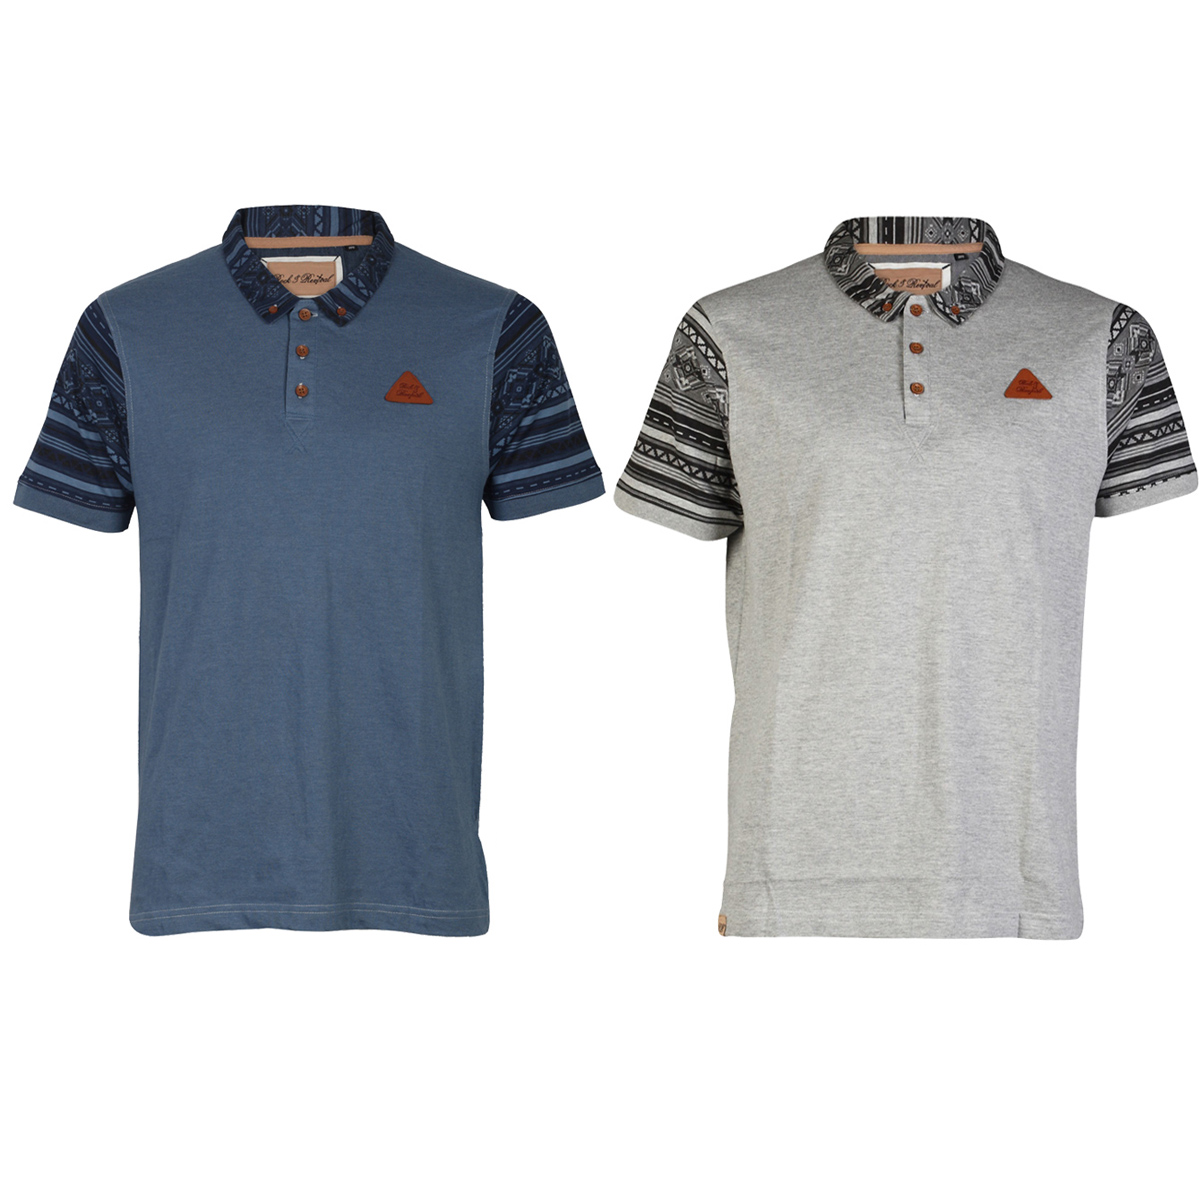 Designer Polo T Shirts Sale T Shirt Design 2018